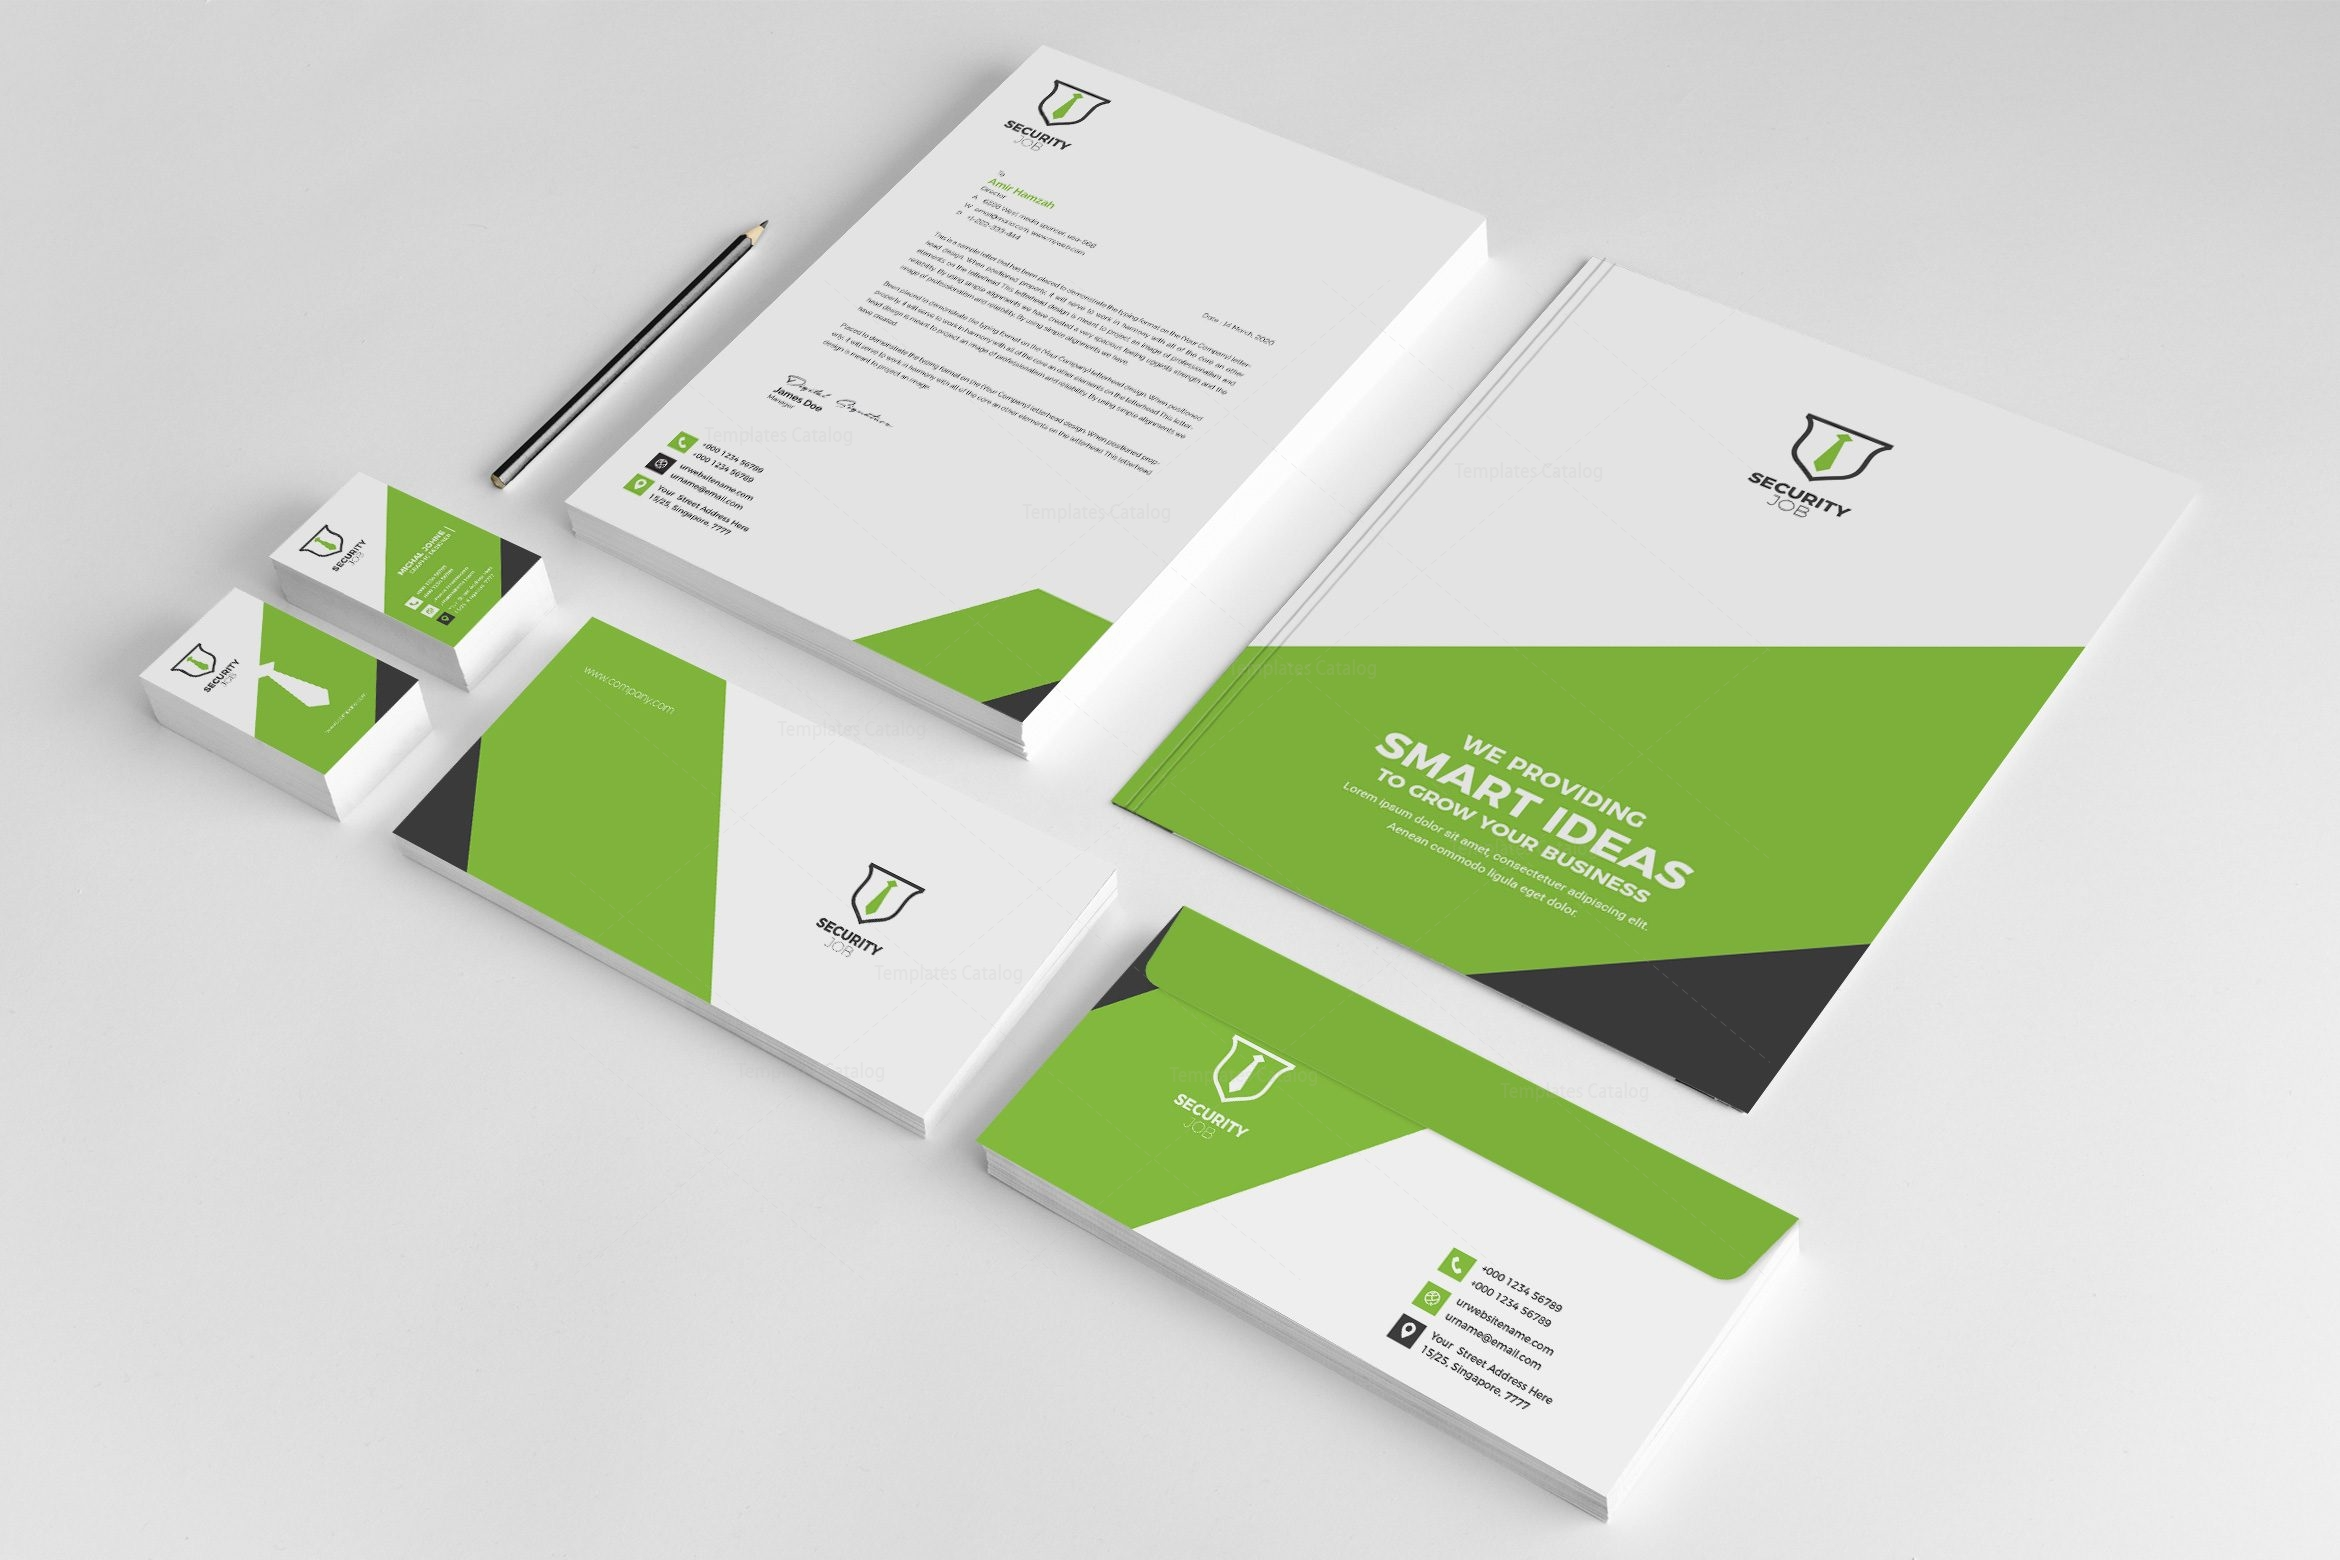 Security Company Creative Corporate Identity Template 001822 ...